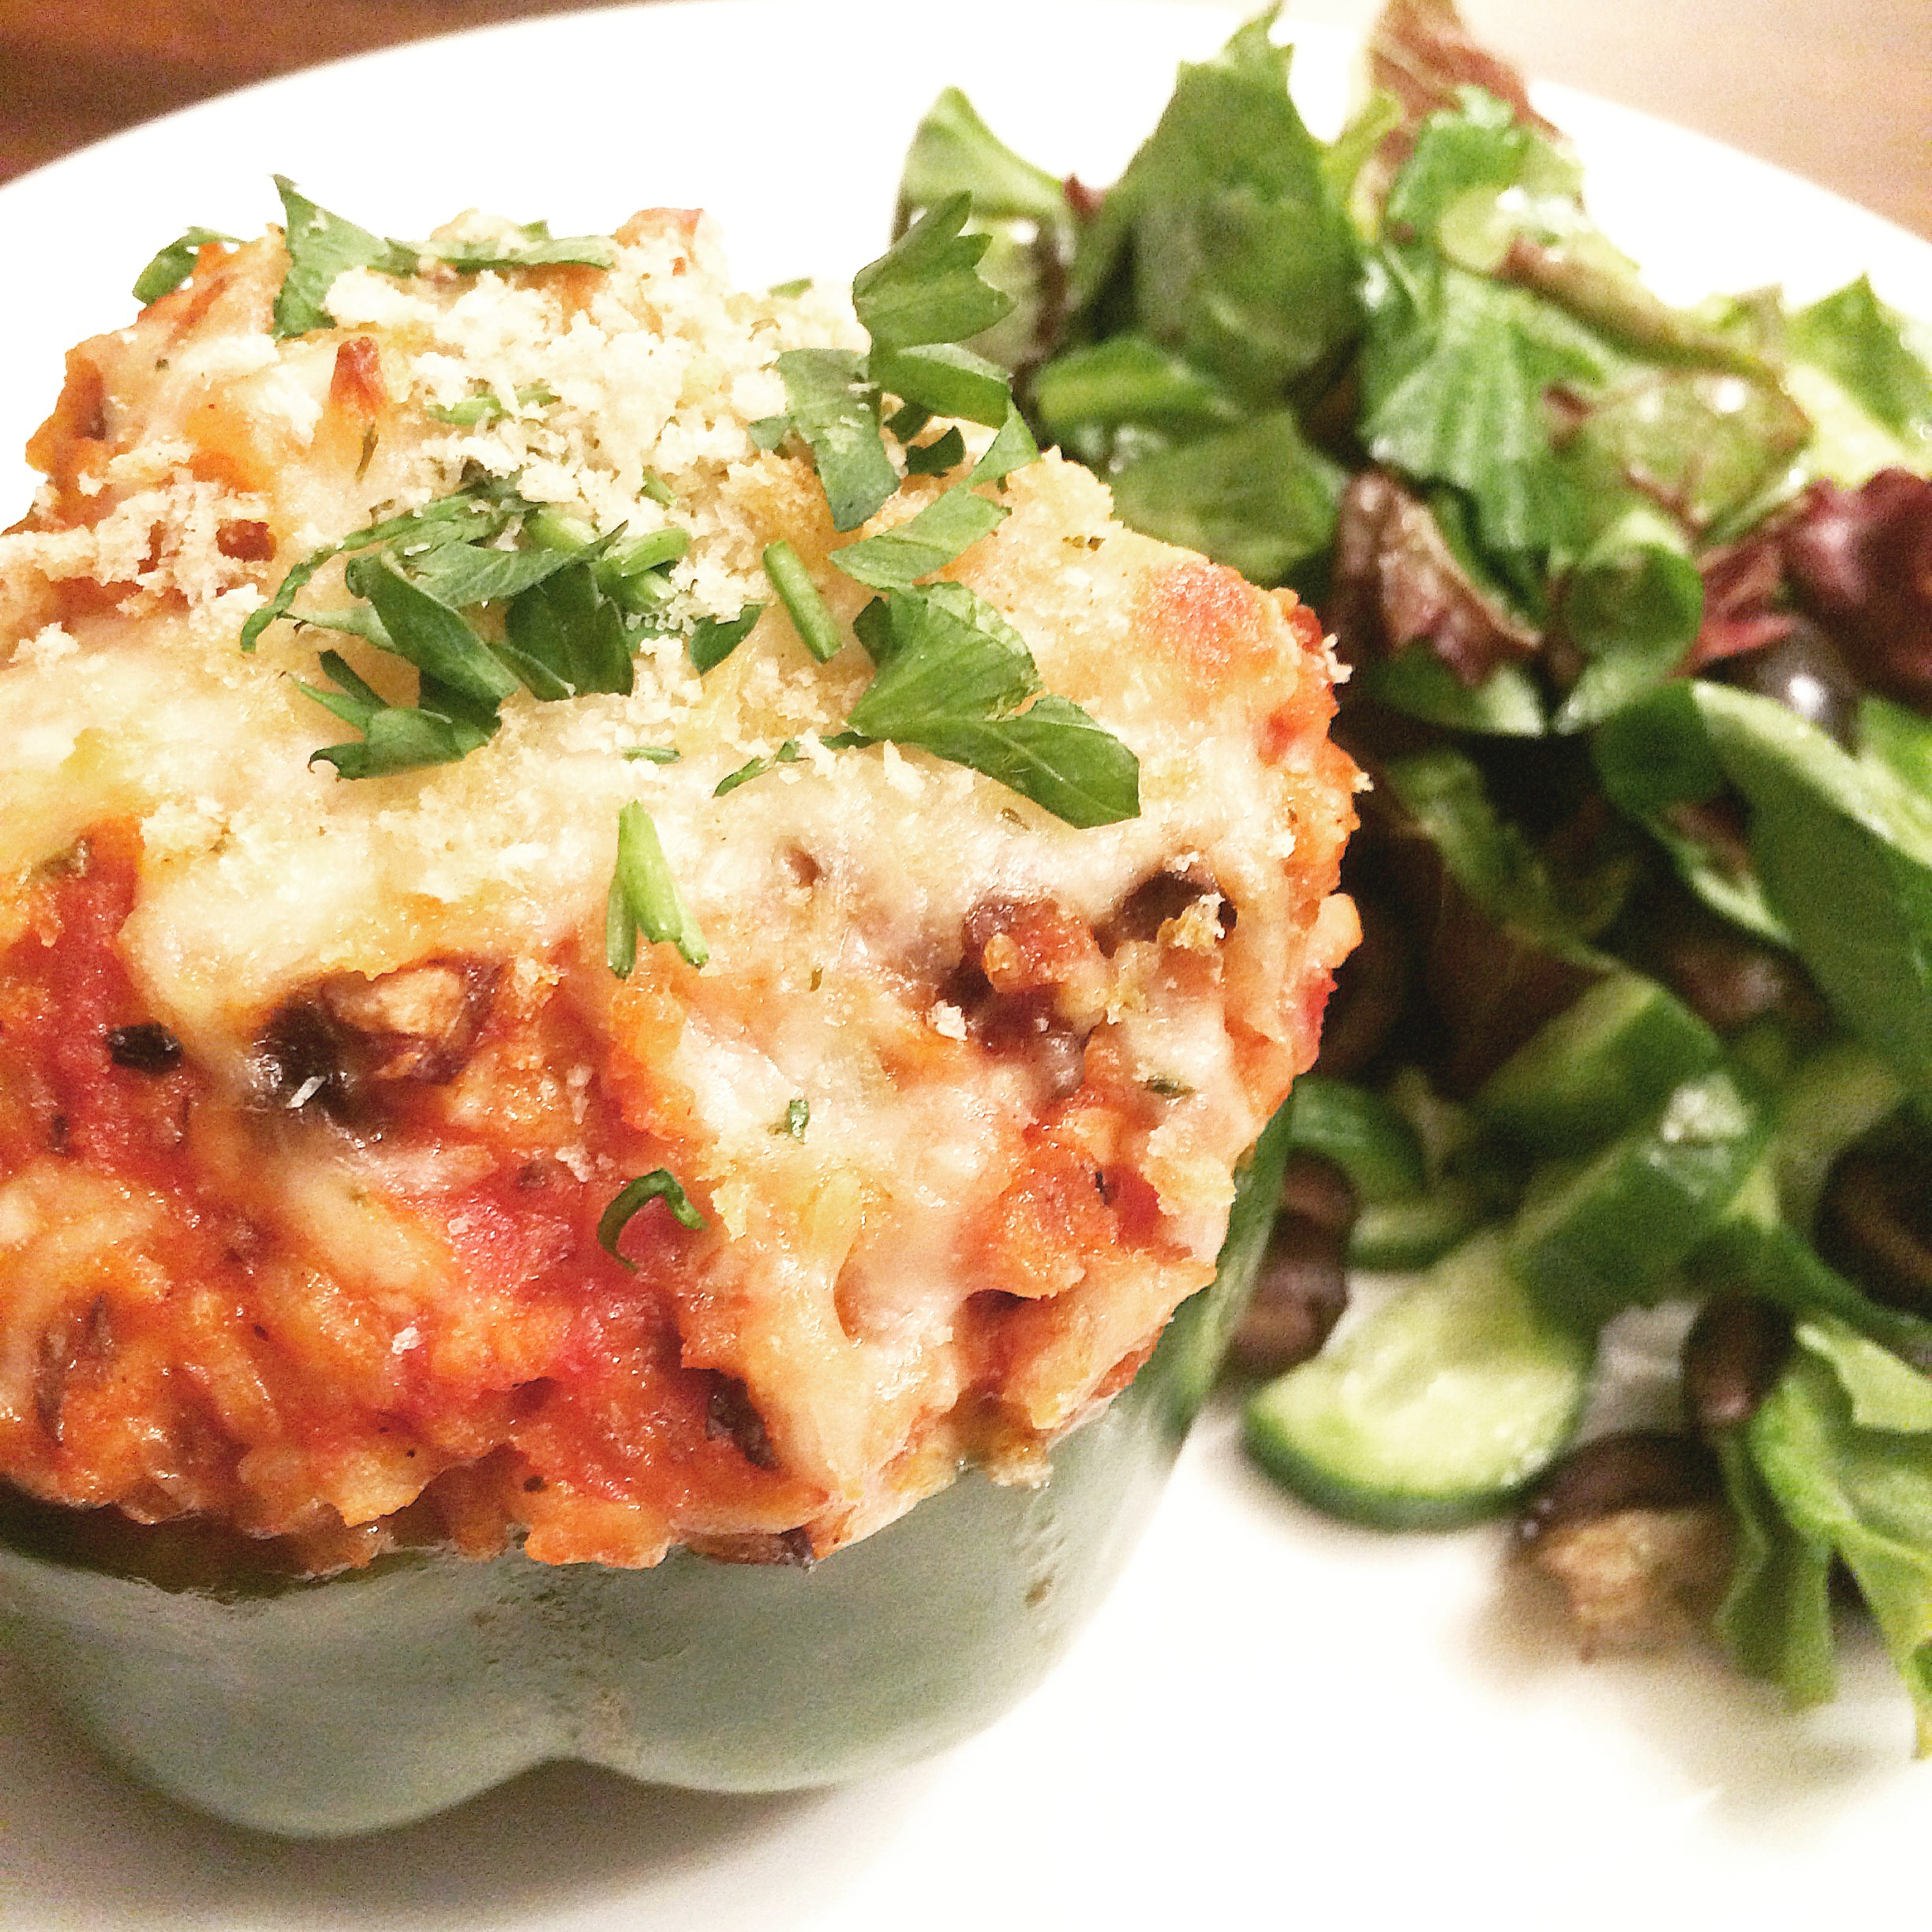 Italian-Style Stuffed Peppers with Spinach and Mushrooms